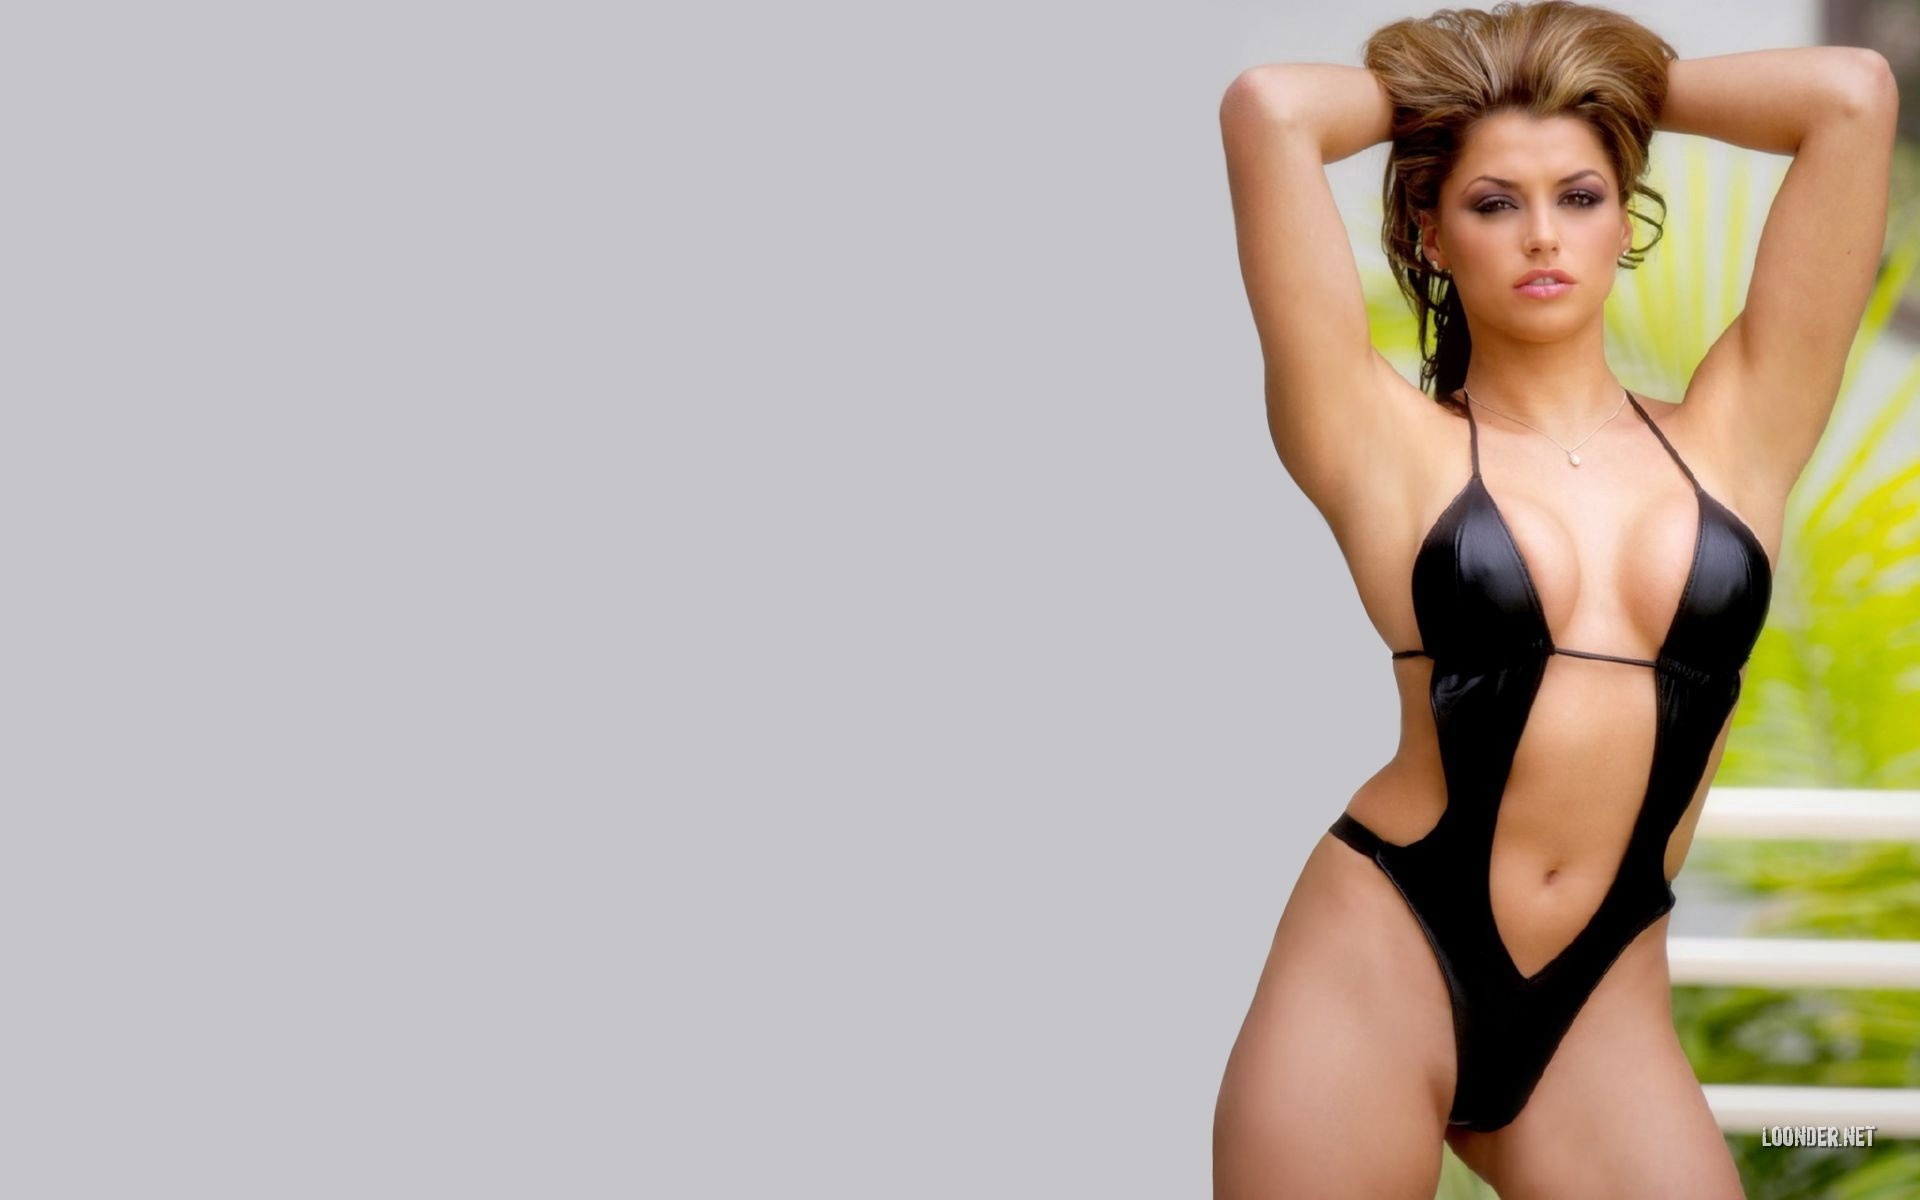 Louise Glover Wallpapers HD